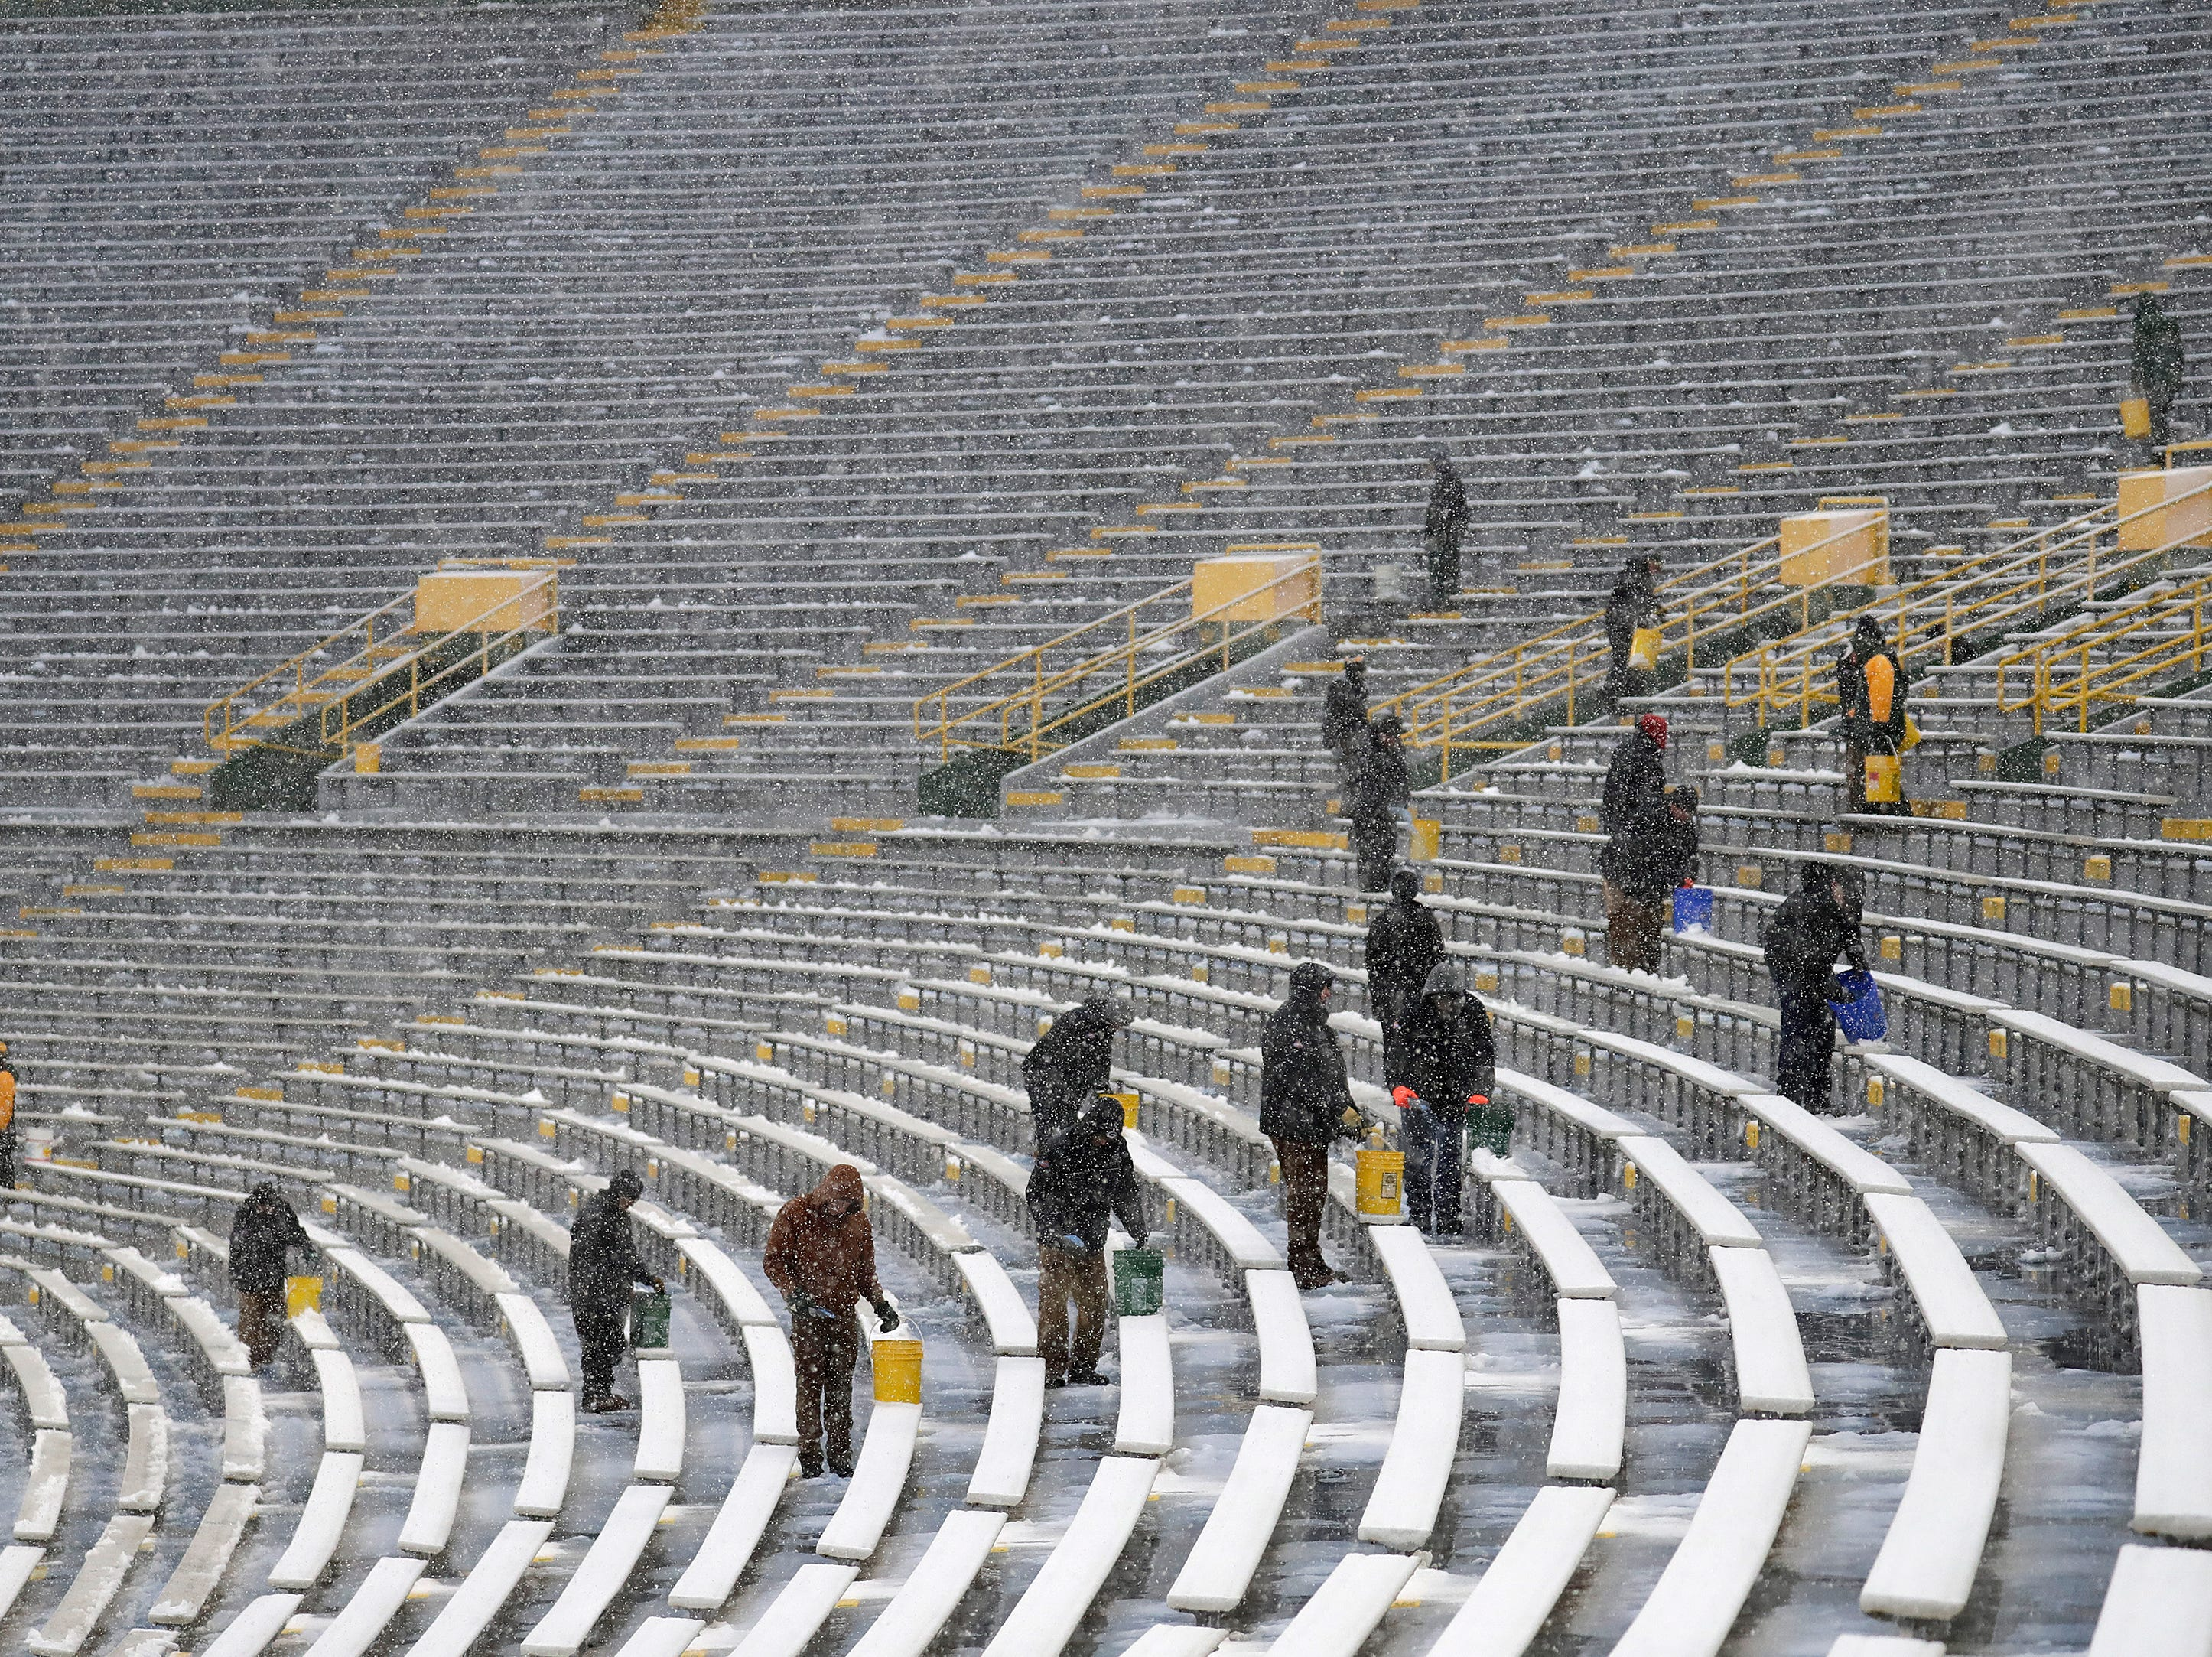 Workers spread salt and clear snow from benches in the seating area before the Green Bay Packers play against the Arizona Cardinals Sunday, December 2, 2018, at Lambeau Field in Green Bay, Wis. 